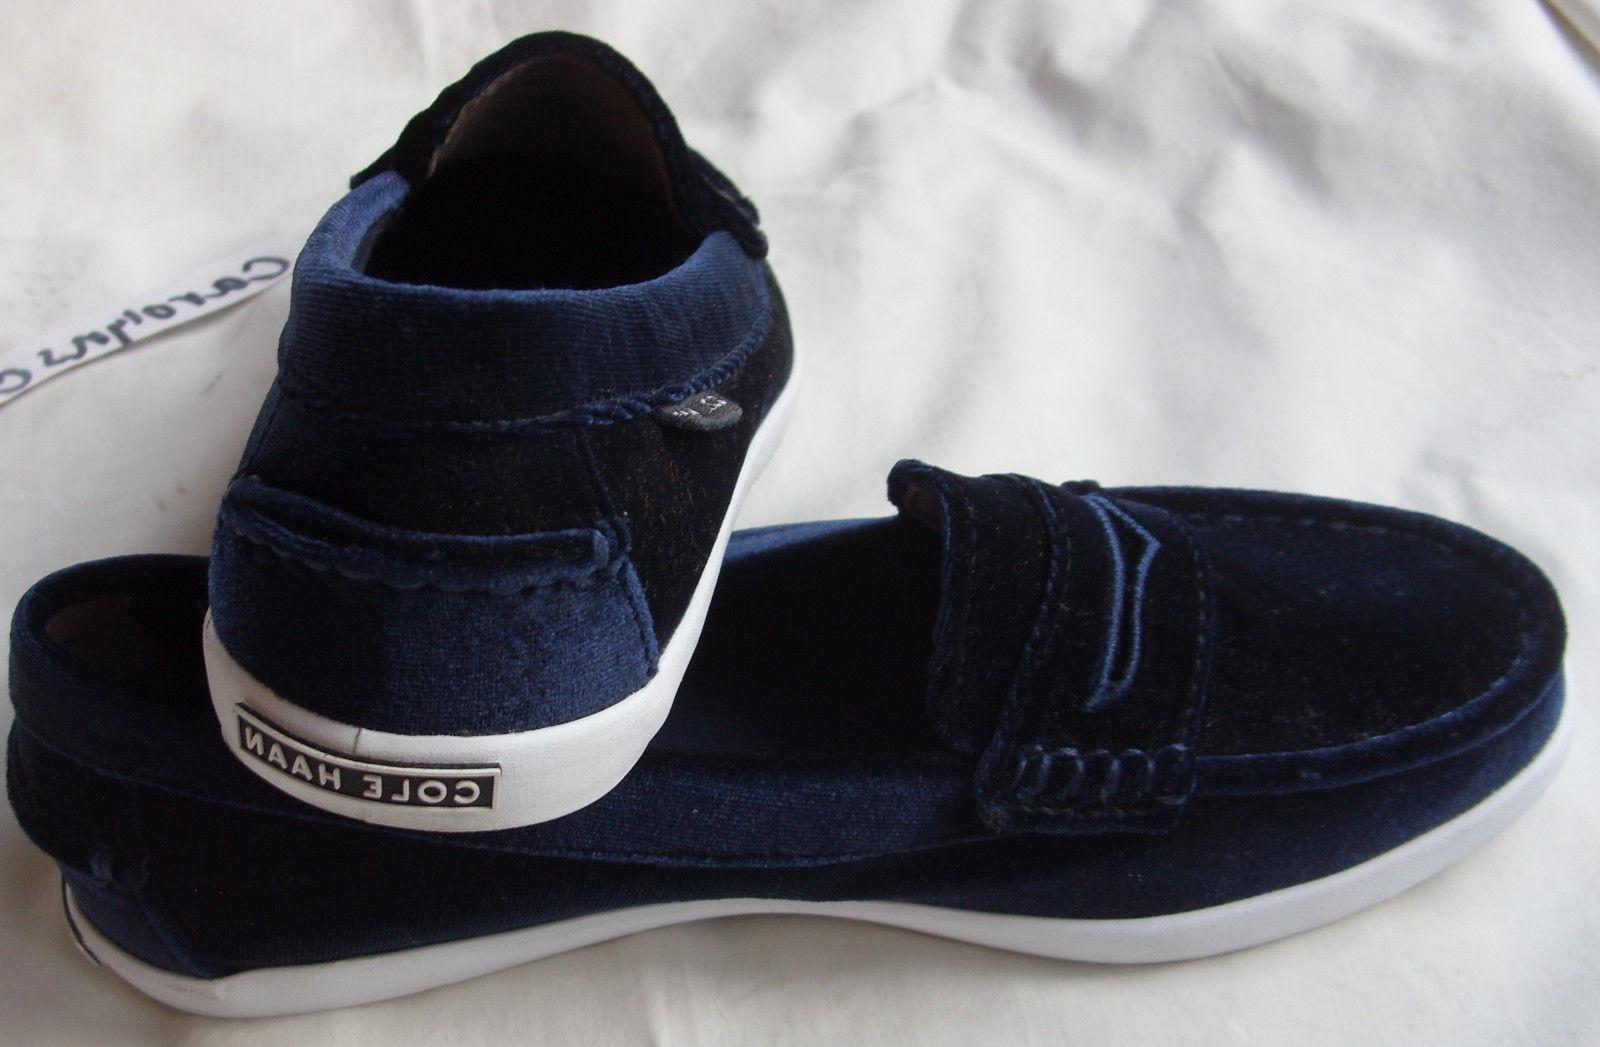 NEW AUTH COLE HAAN WOMENS NANTUCKET II SHOES NAVY BLUE WHITE SZ 7